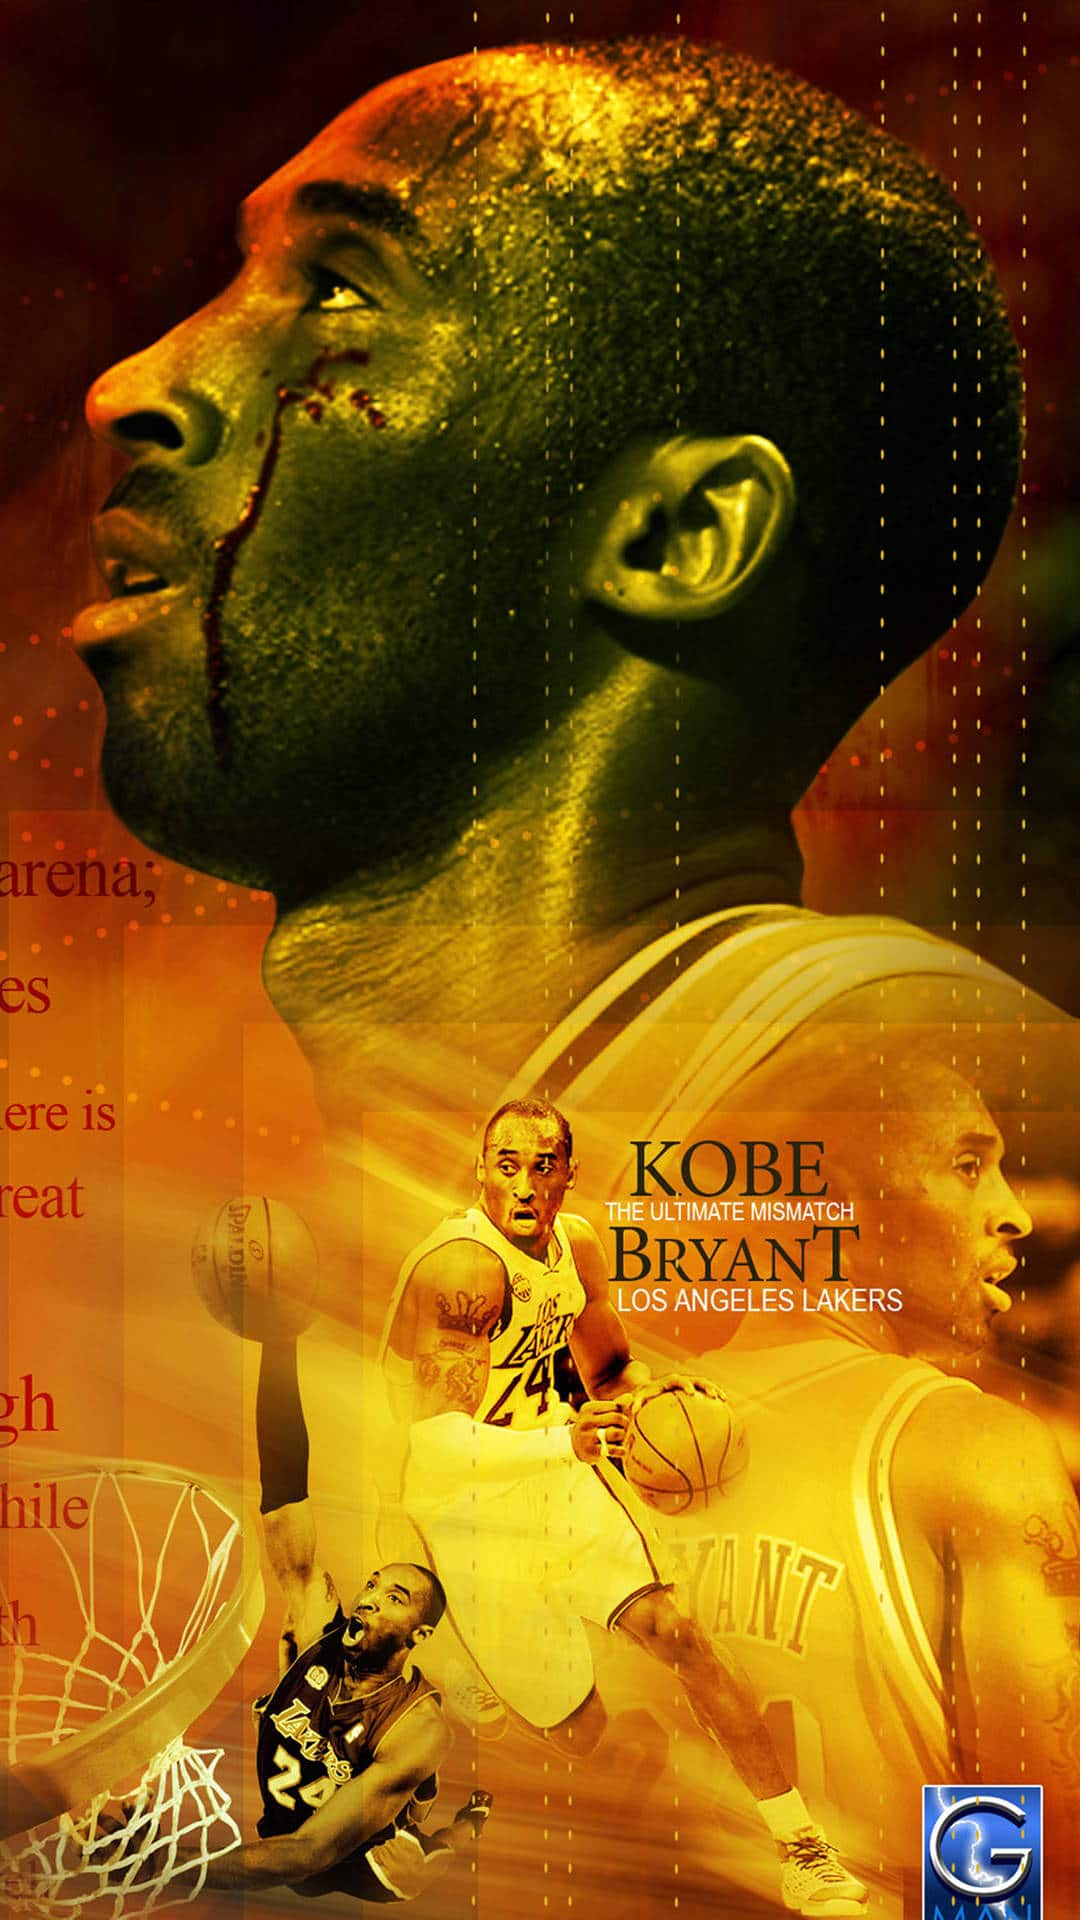 Kobe Bryant Wallpaper Hd 30 Kobe Bryant Wallpapers Hd For Iphone 2016 Apple Lives